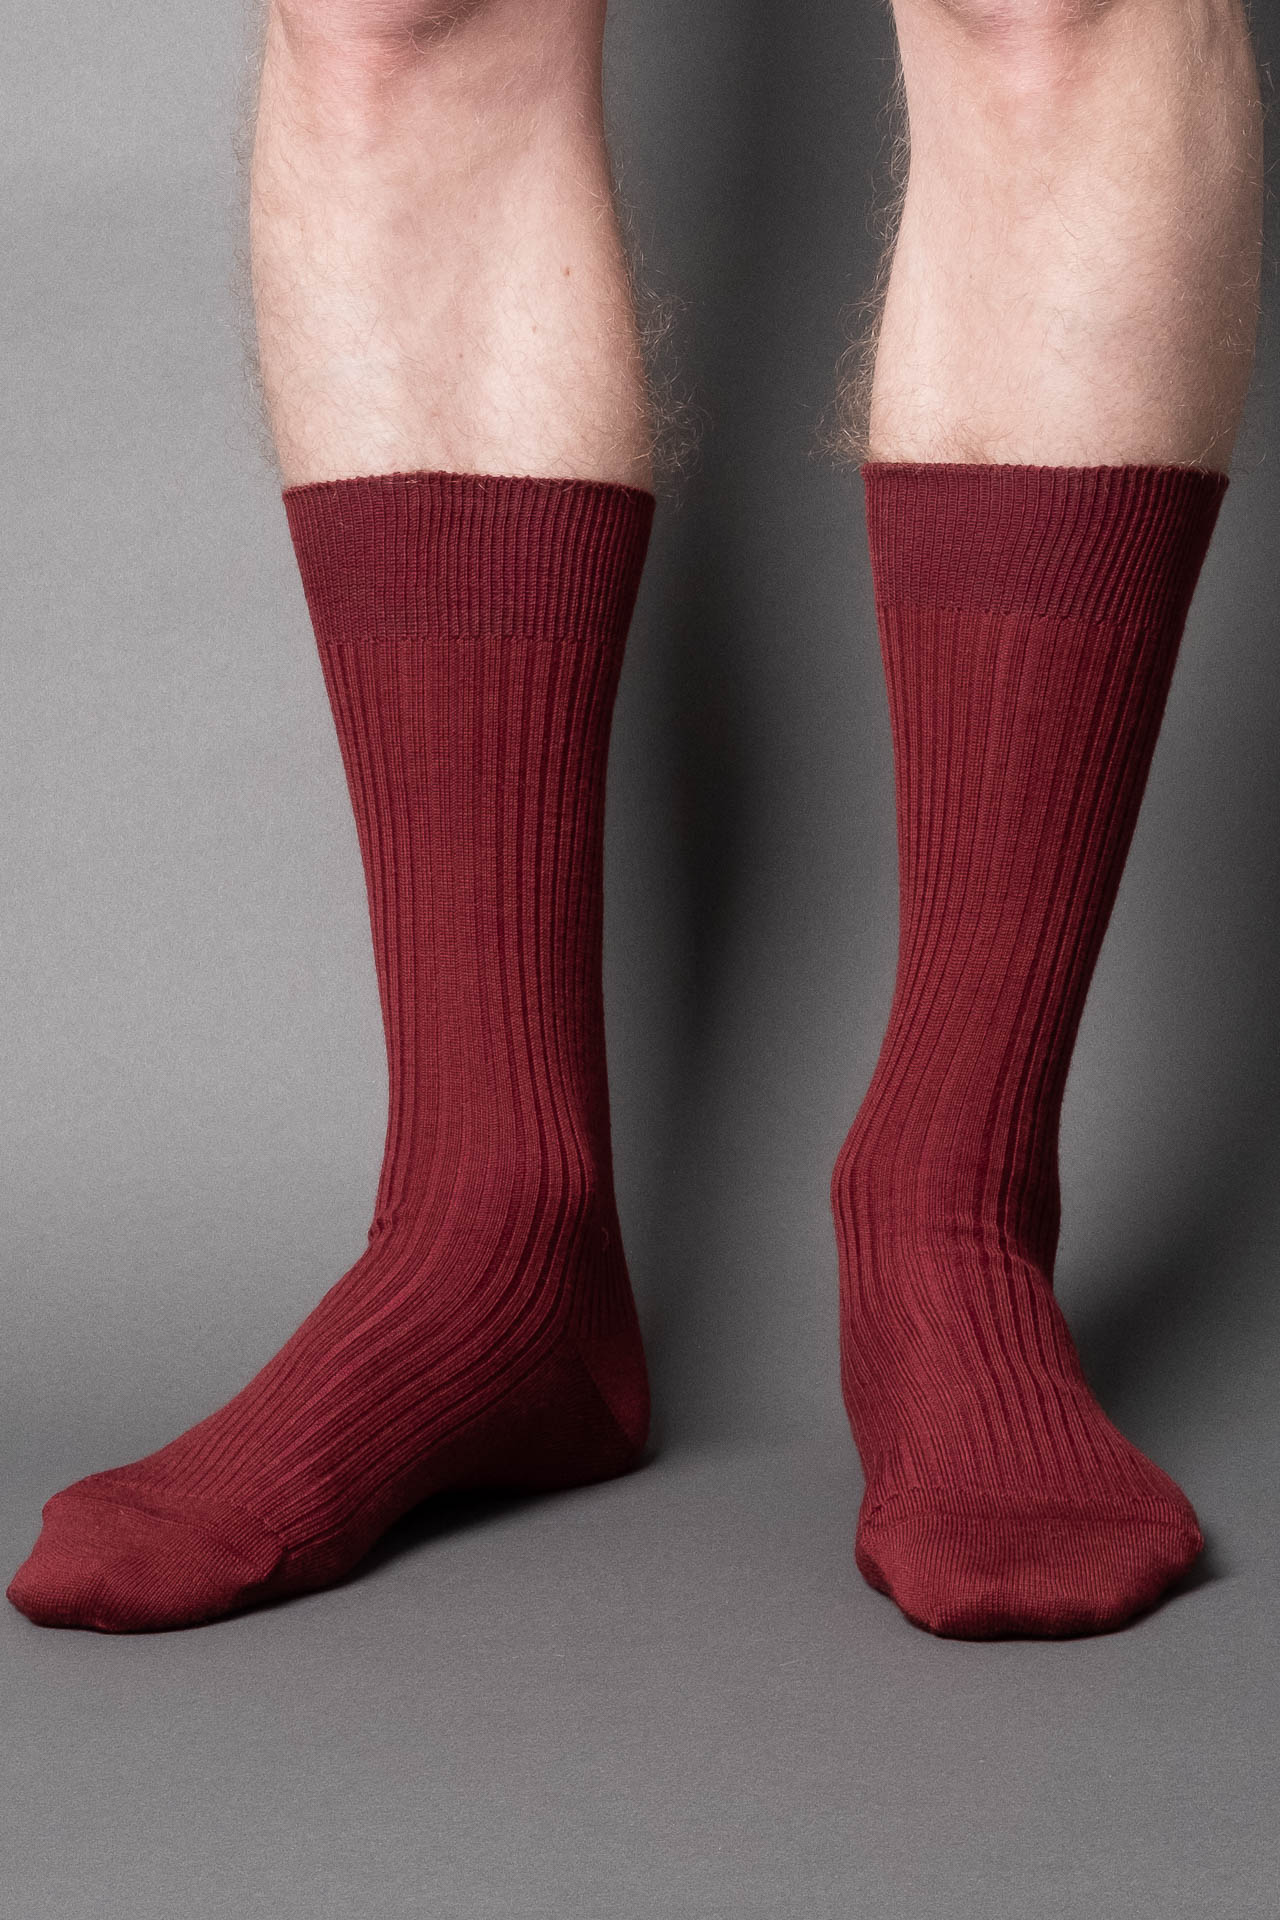 once a day-wool-dress-socks-colors-made-in-japan-premium-burgundy-red